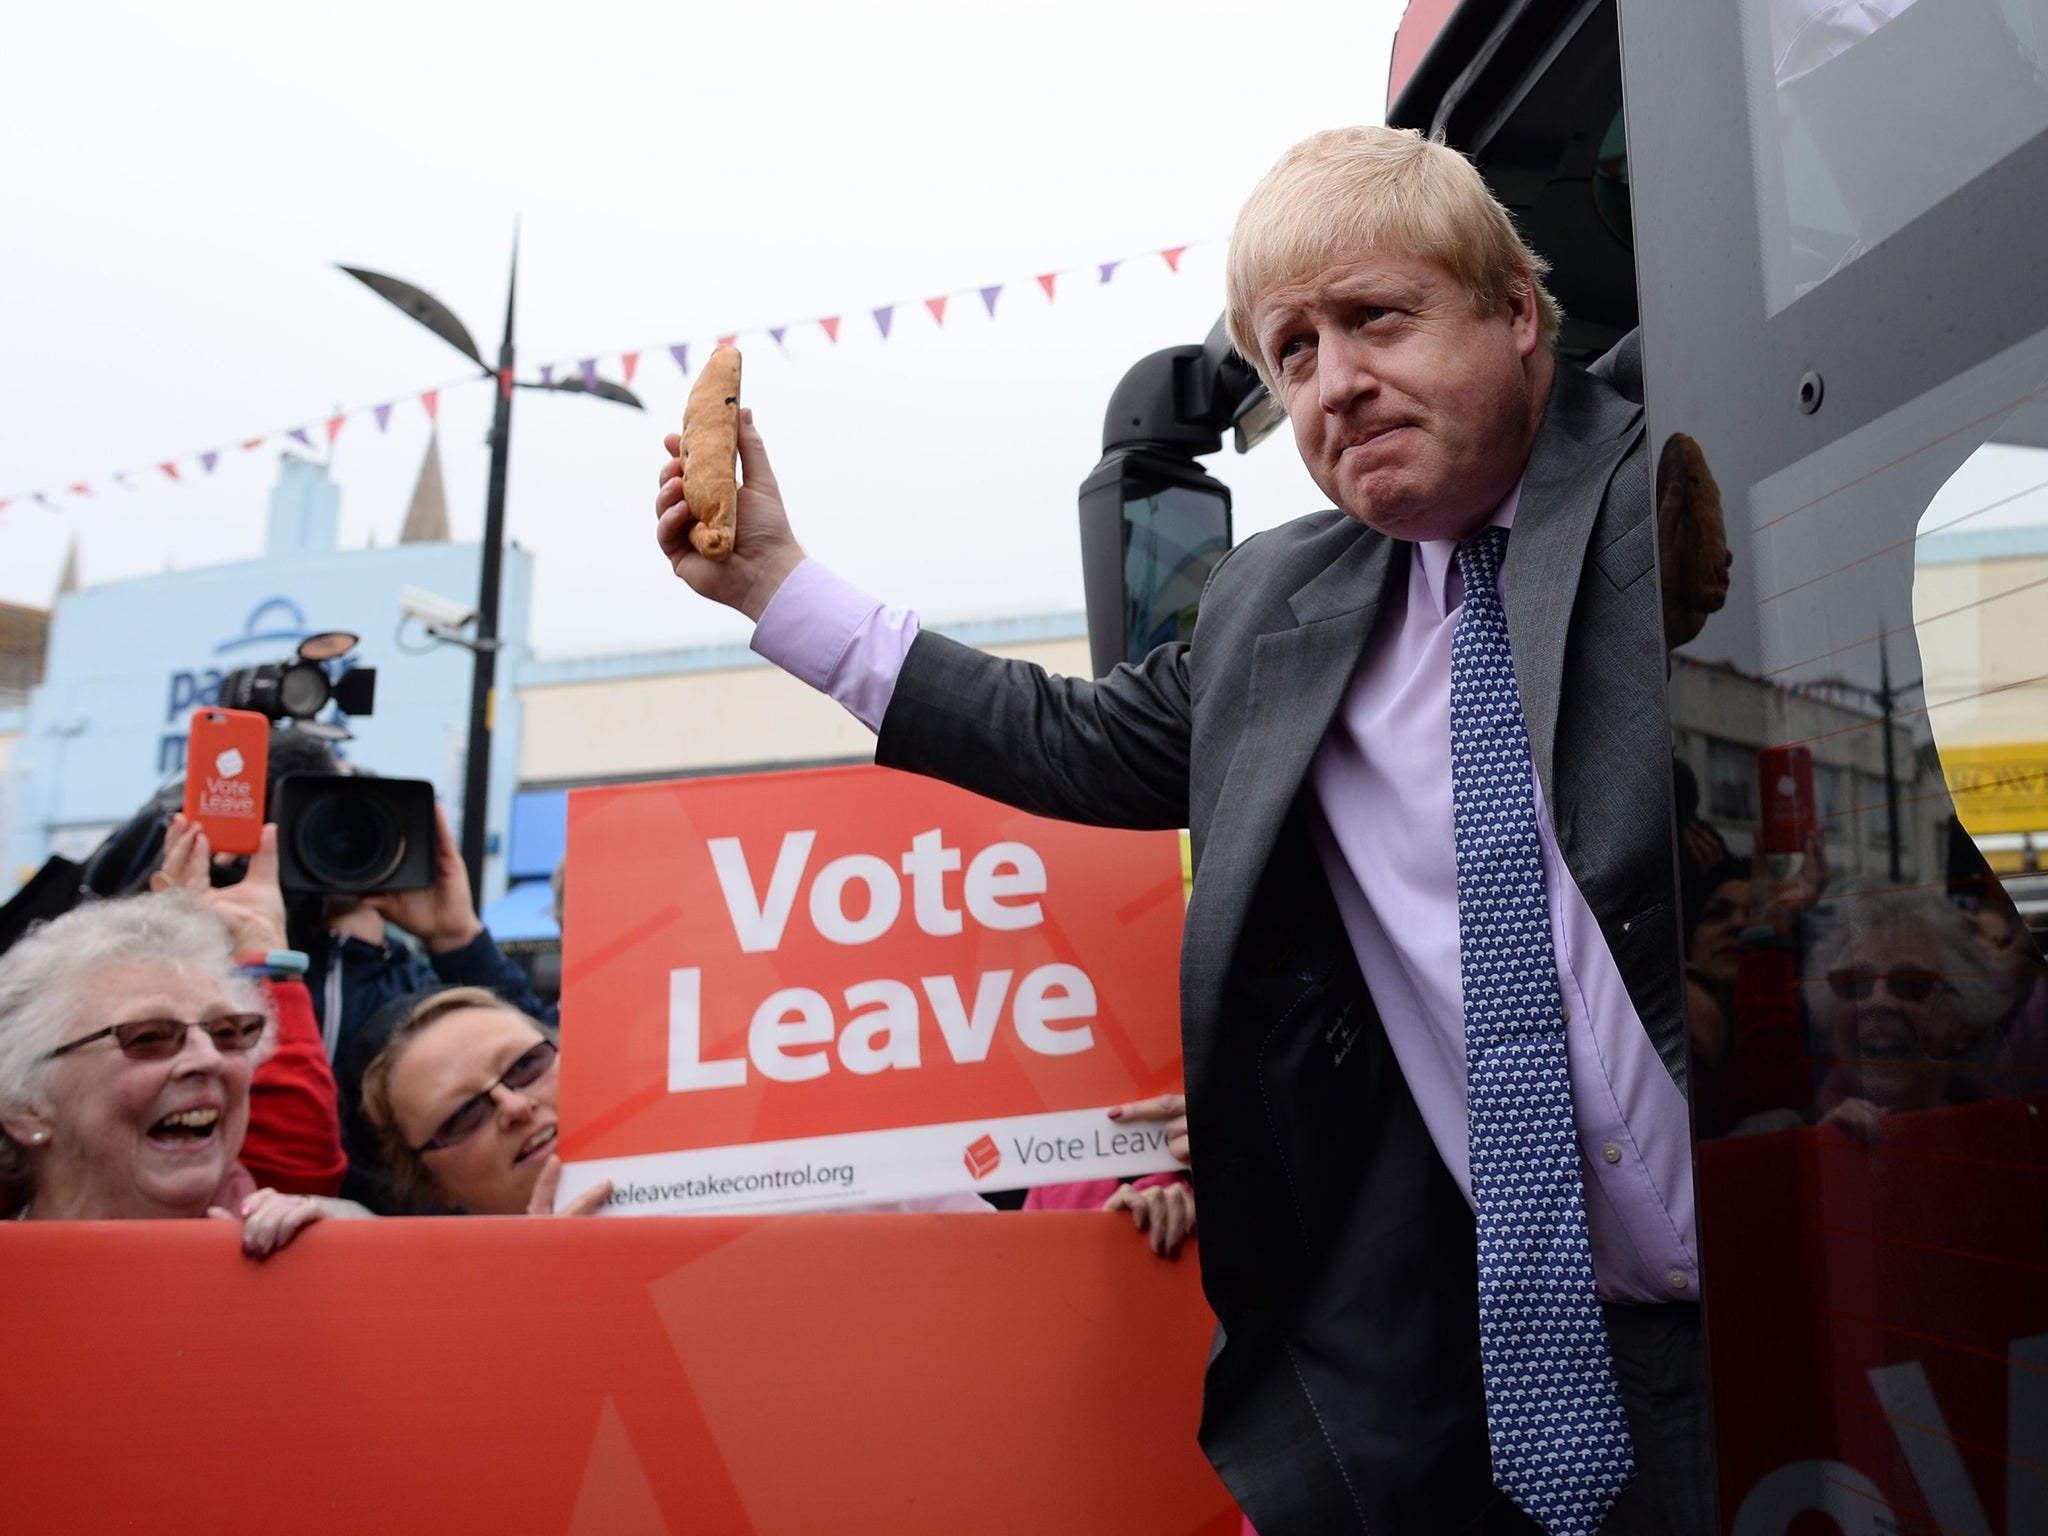 Boris Johnson's promise of lucrative post-Brexit trade deals in trouble, study warns